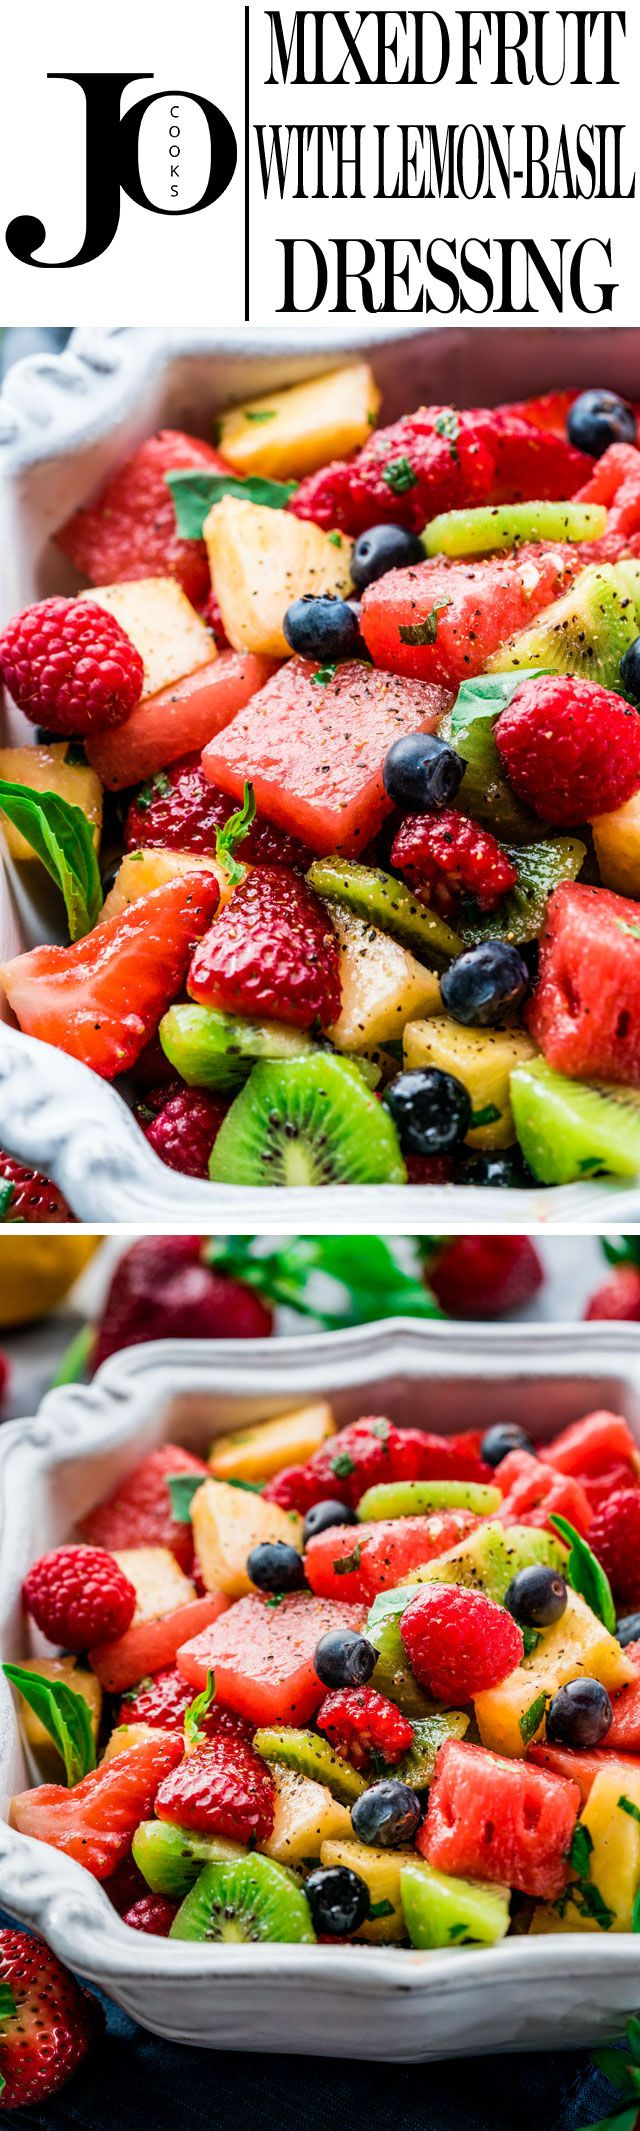 This Mixed Fruit with Lemon-Basil Dressing is super refreshing and delicious with an incredible savory dressing.